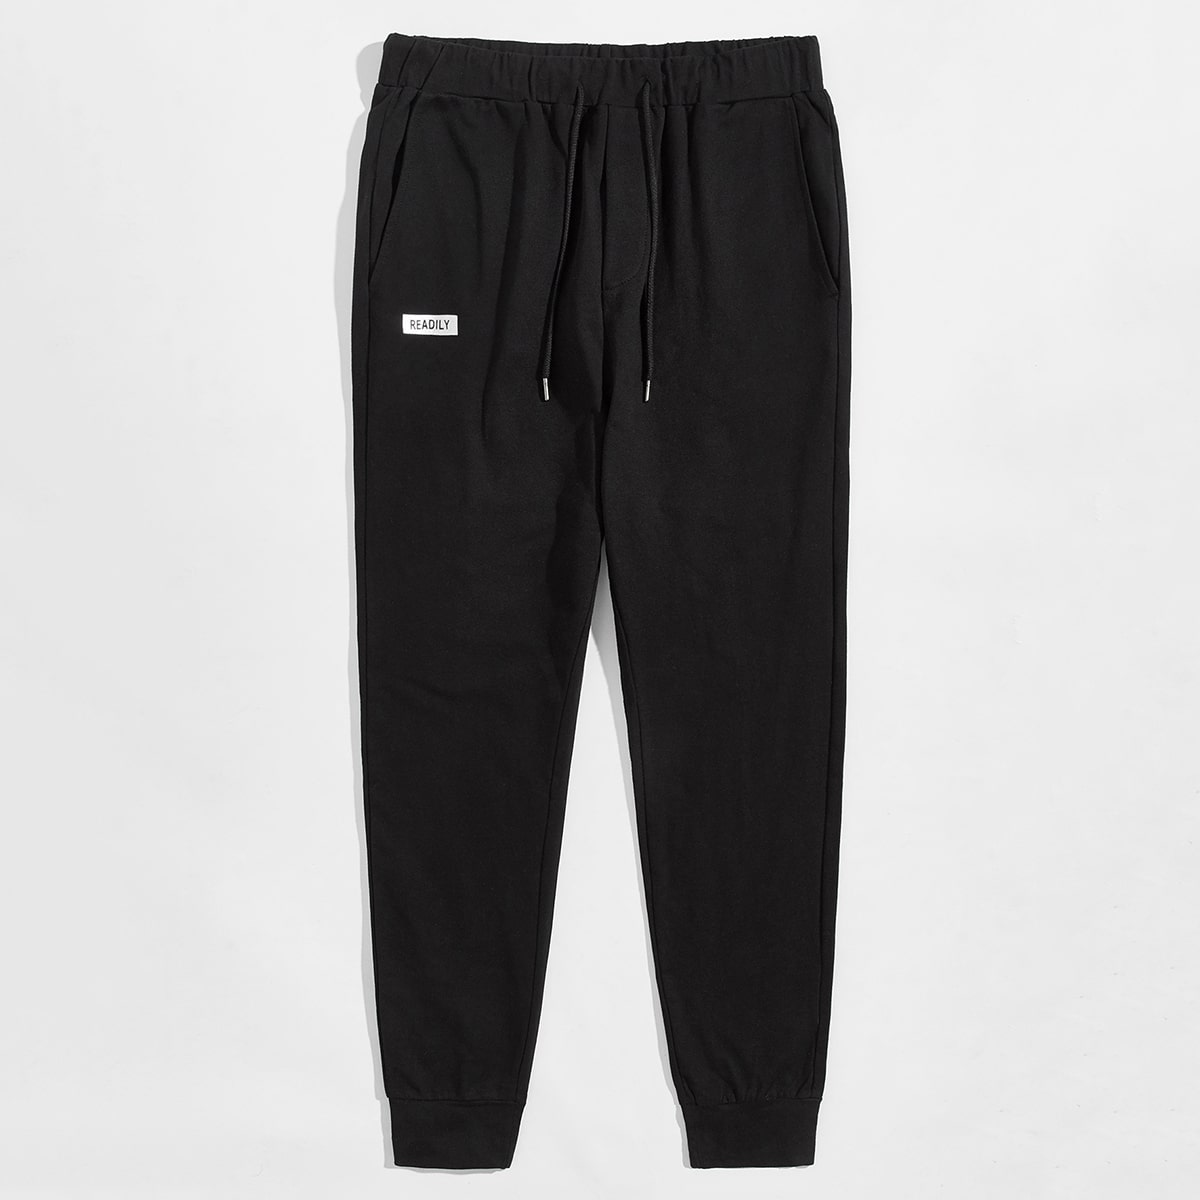 Men Letter Graphic Drawstring Waist Sweatpants